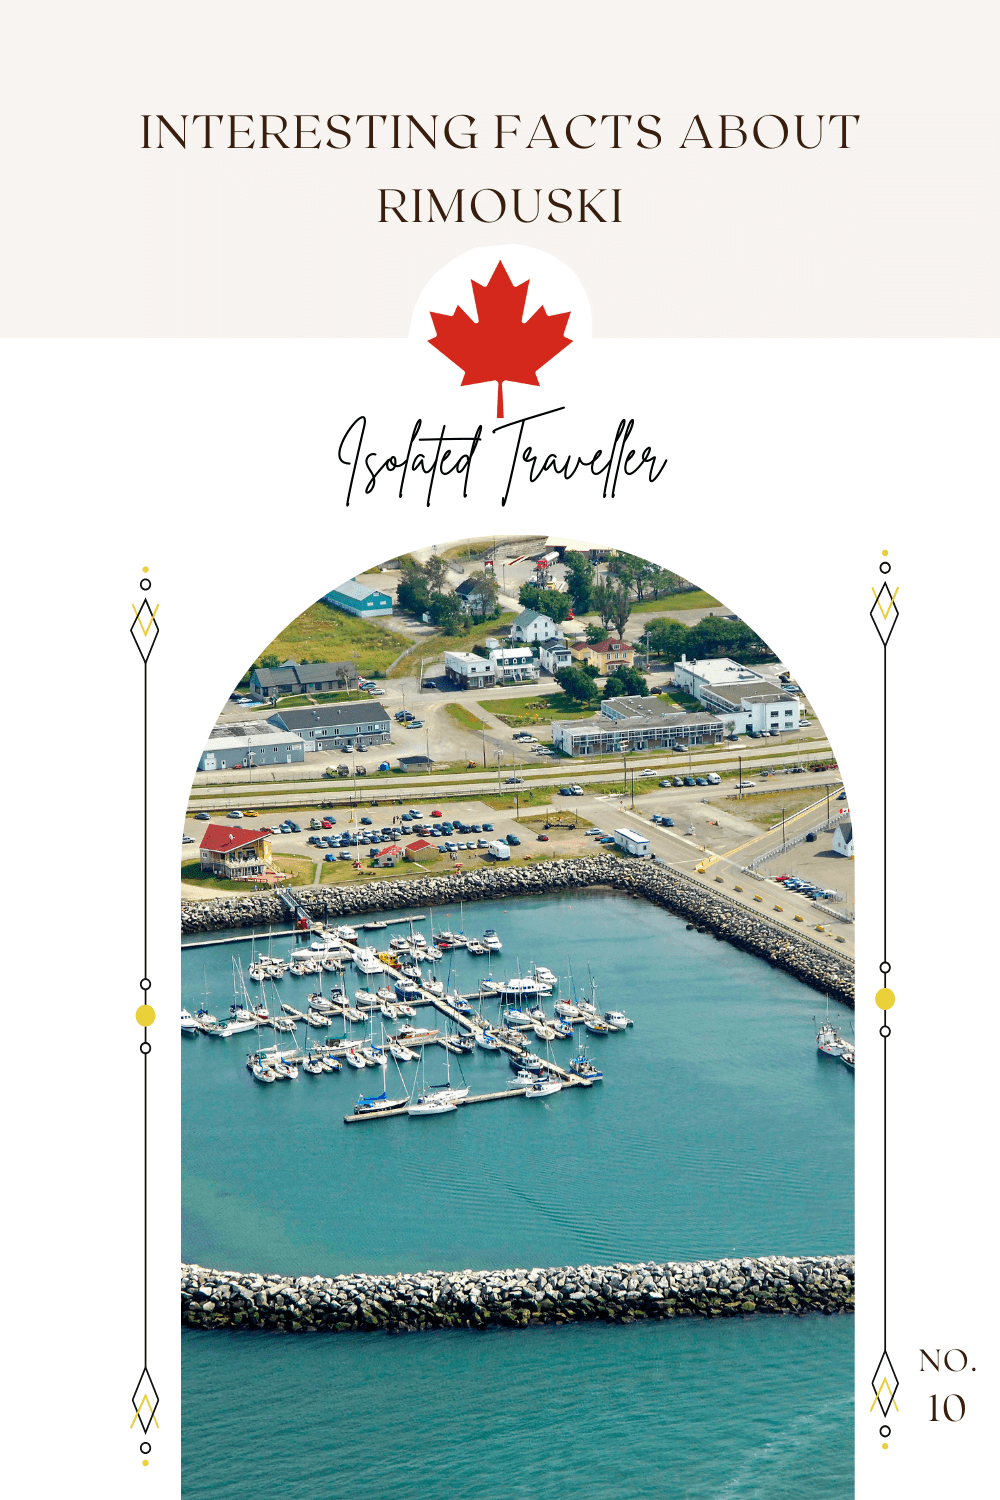 Facts About Rimouski